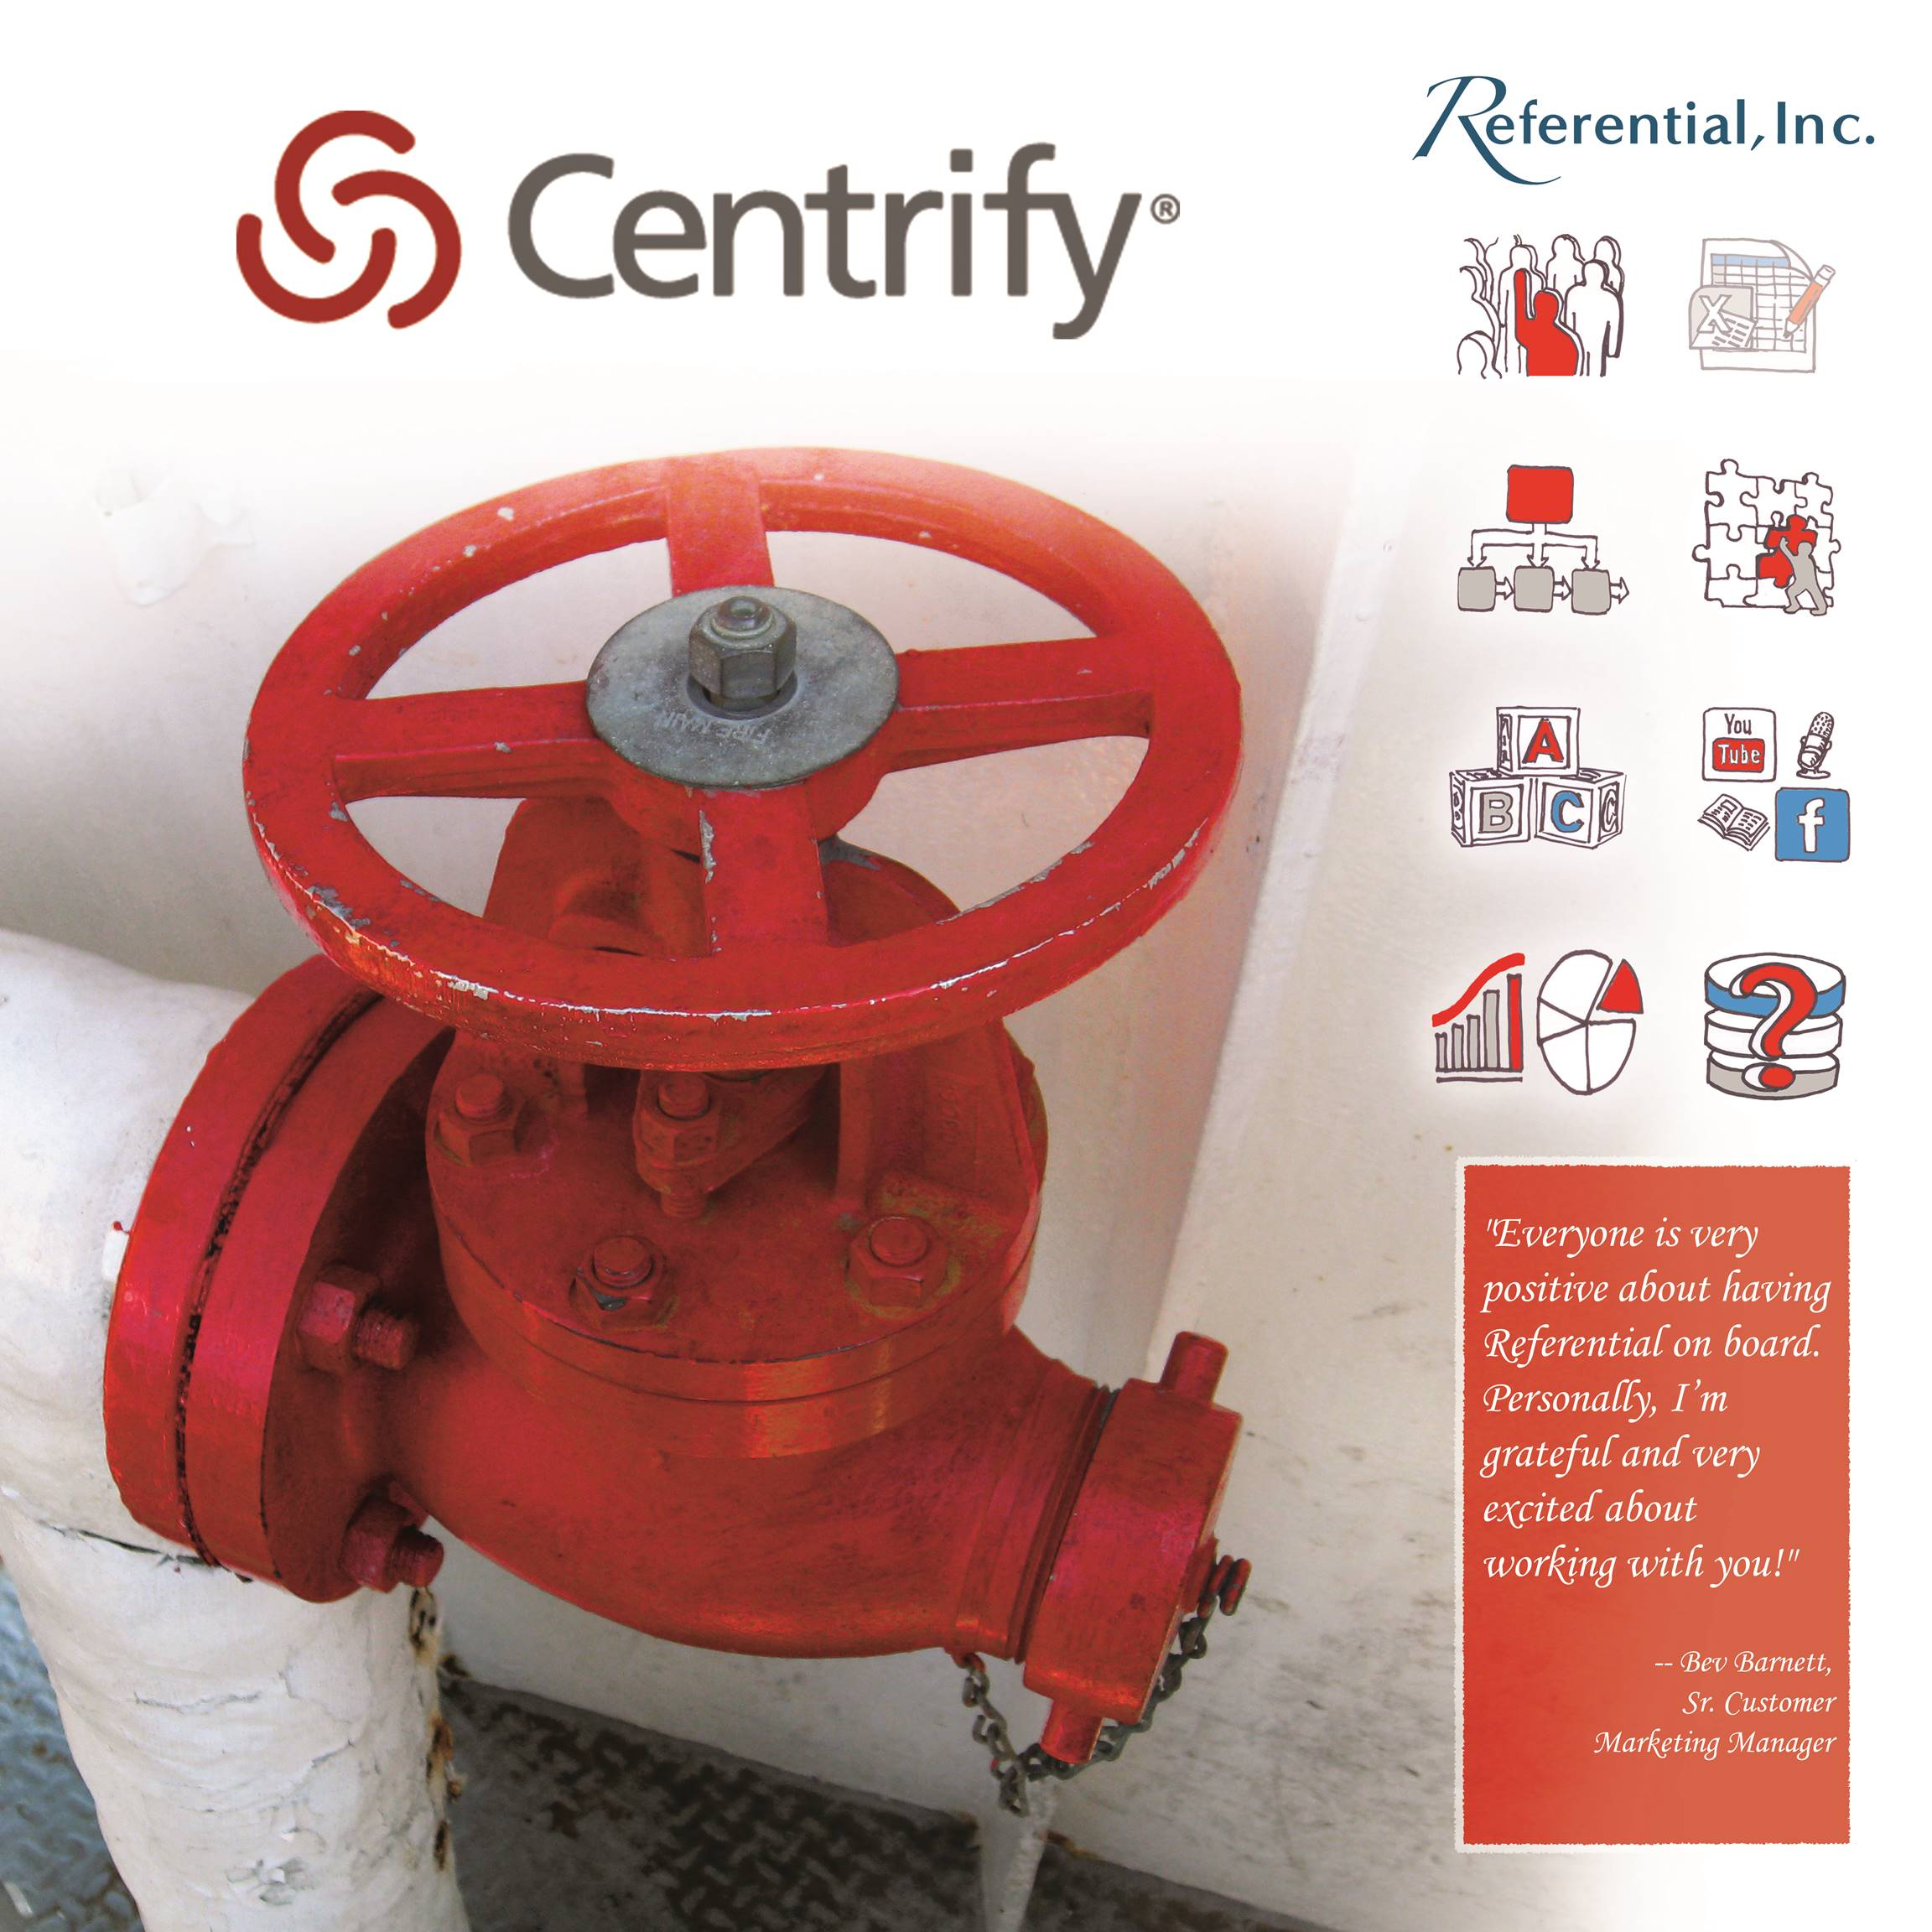 Centrify in PPT for printing.jpg